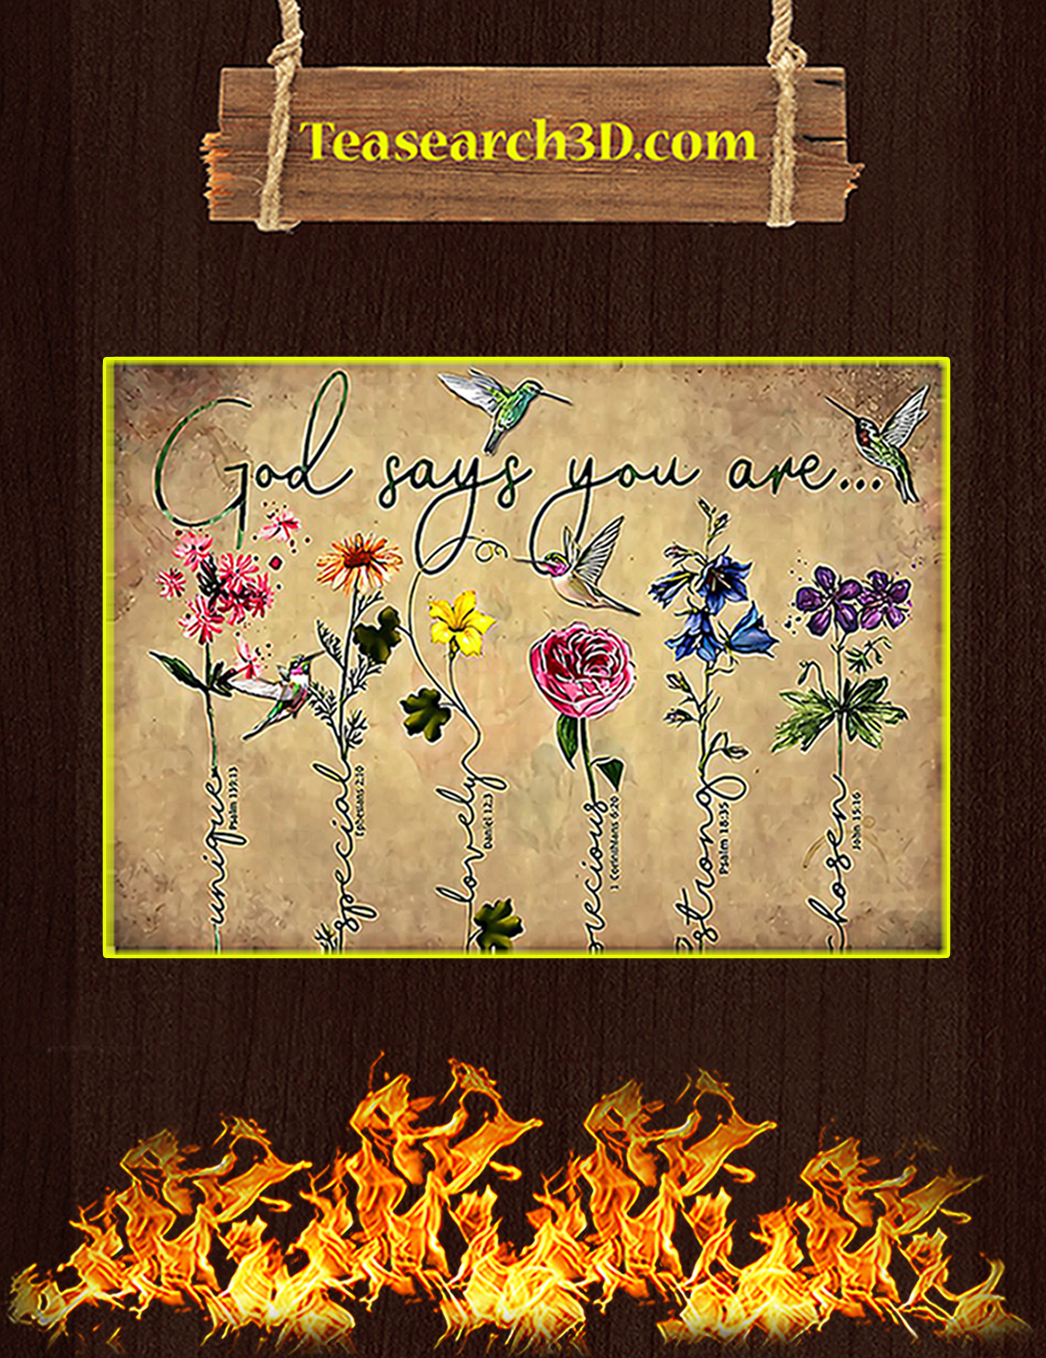 Hummingbird flower God says you are poster A1